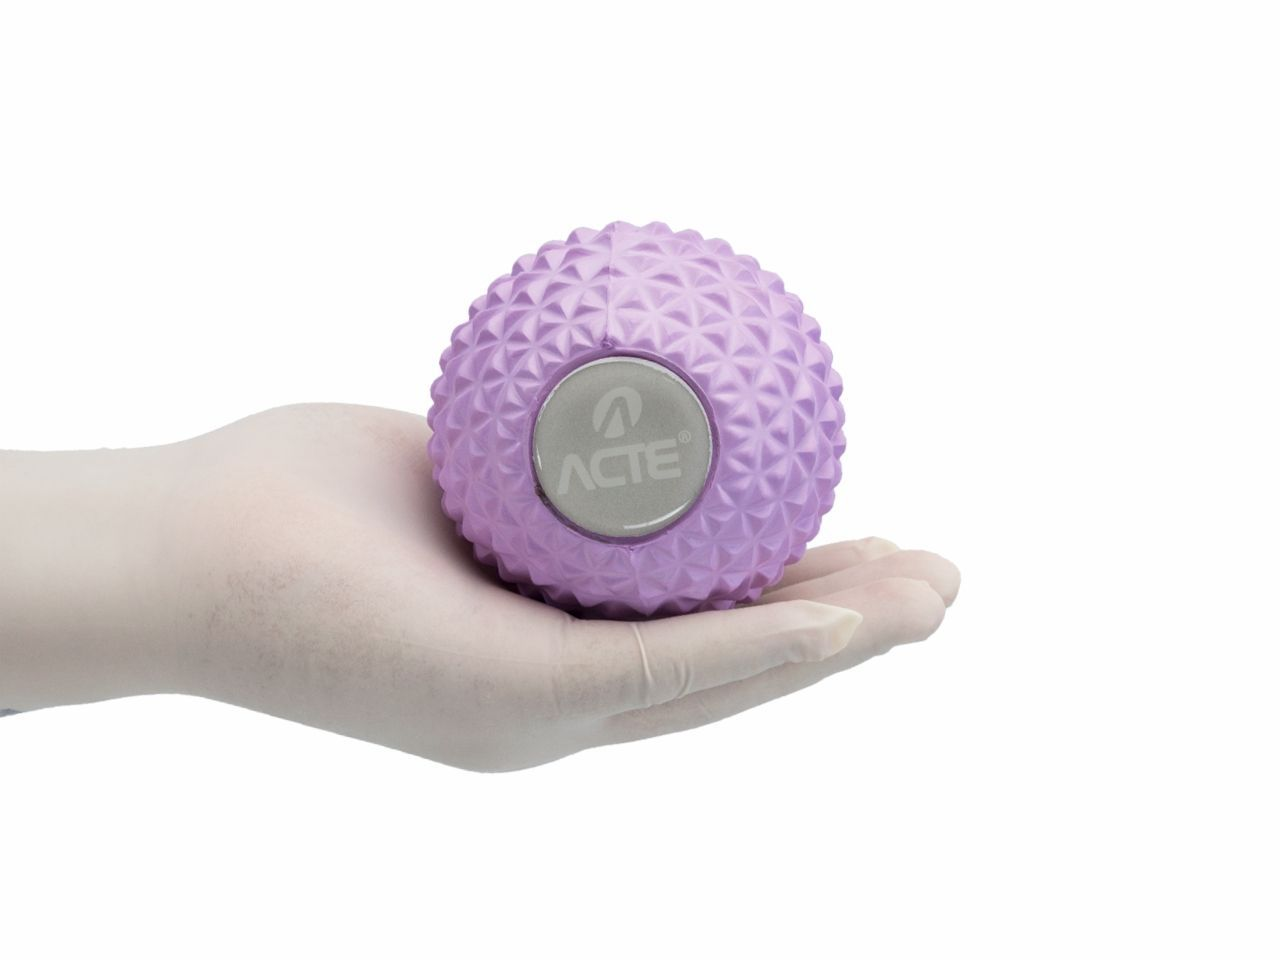 Bola Massageadora Diamond 9cm Acte